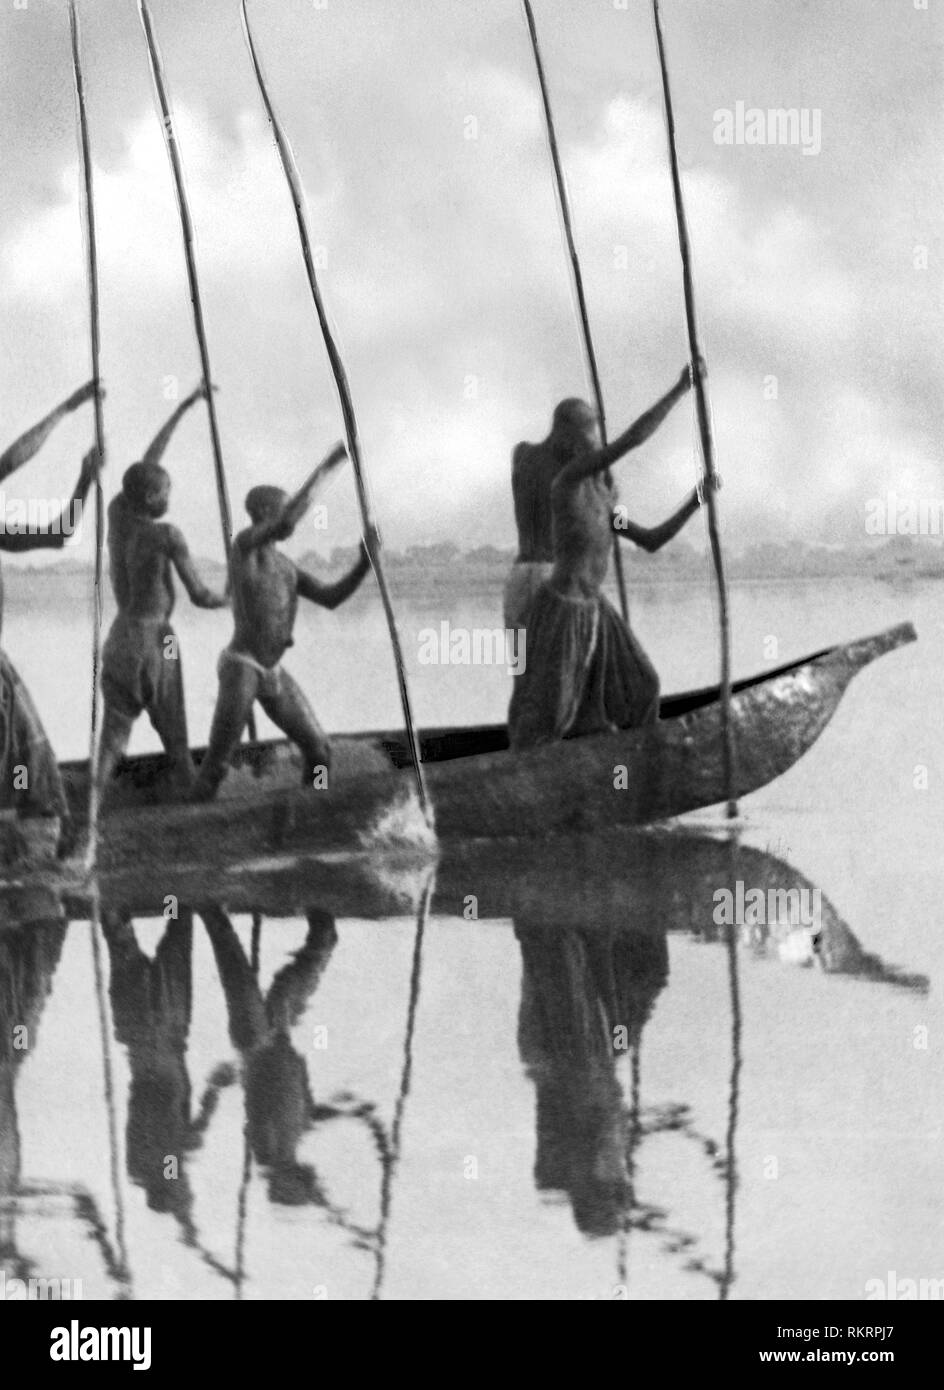 pirogues, niger river, nigeria, africa 1920 - Stock Image